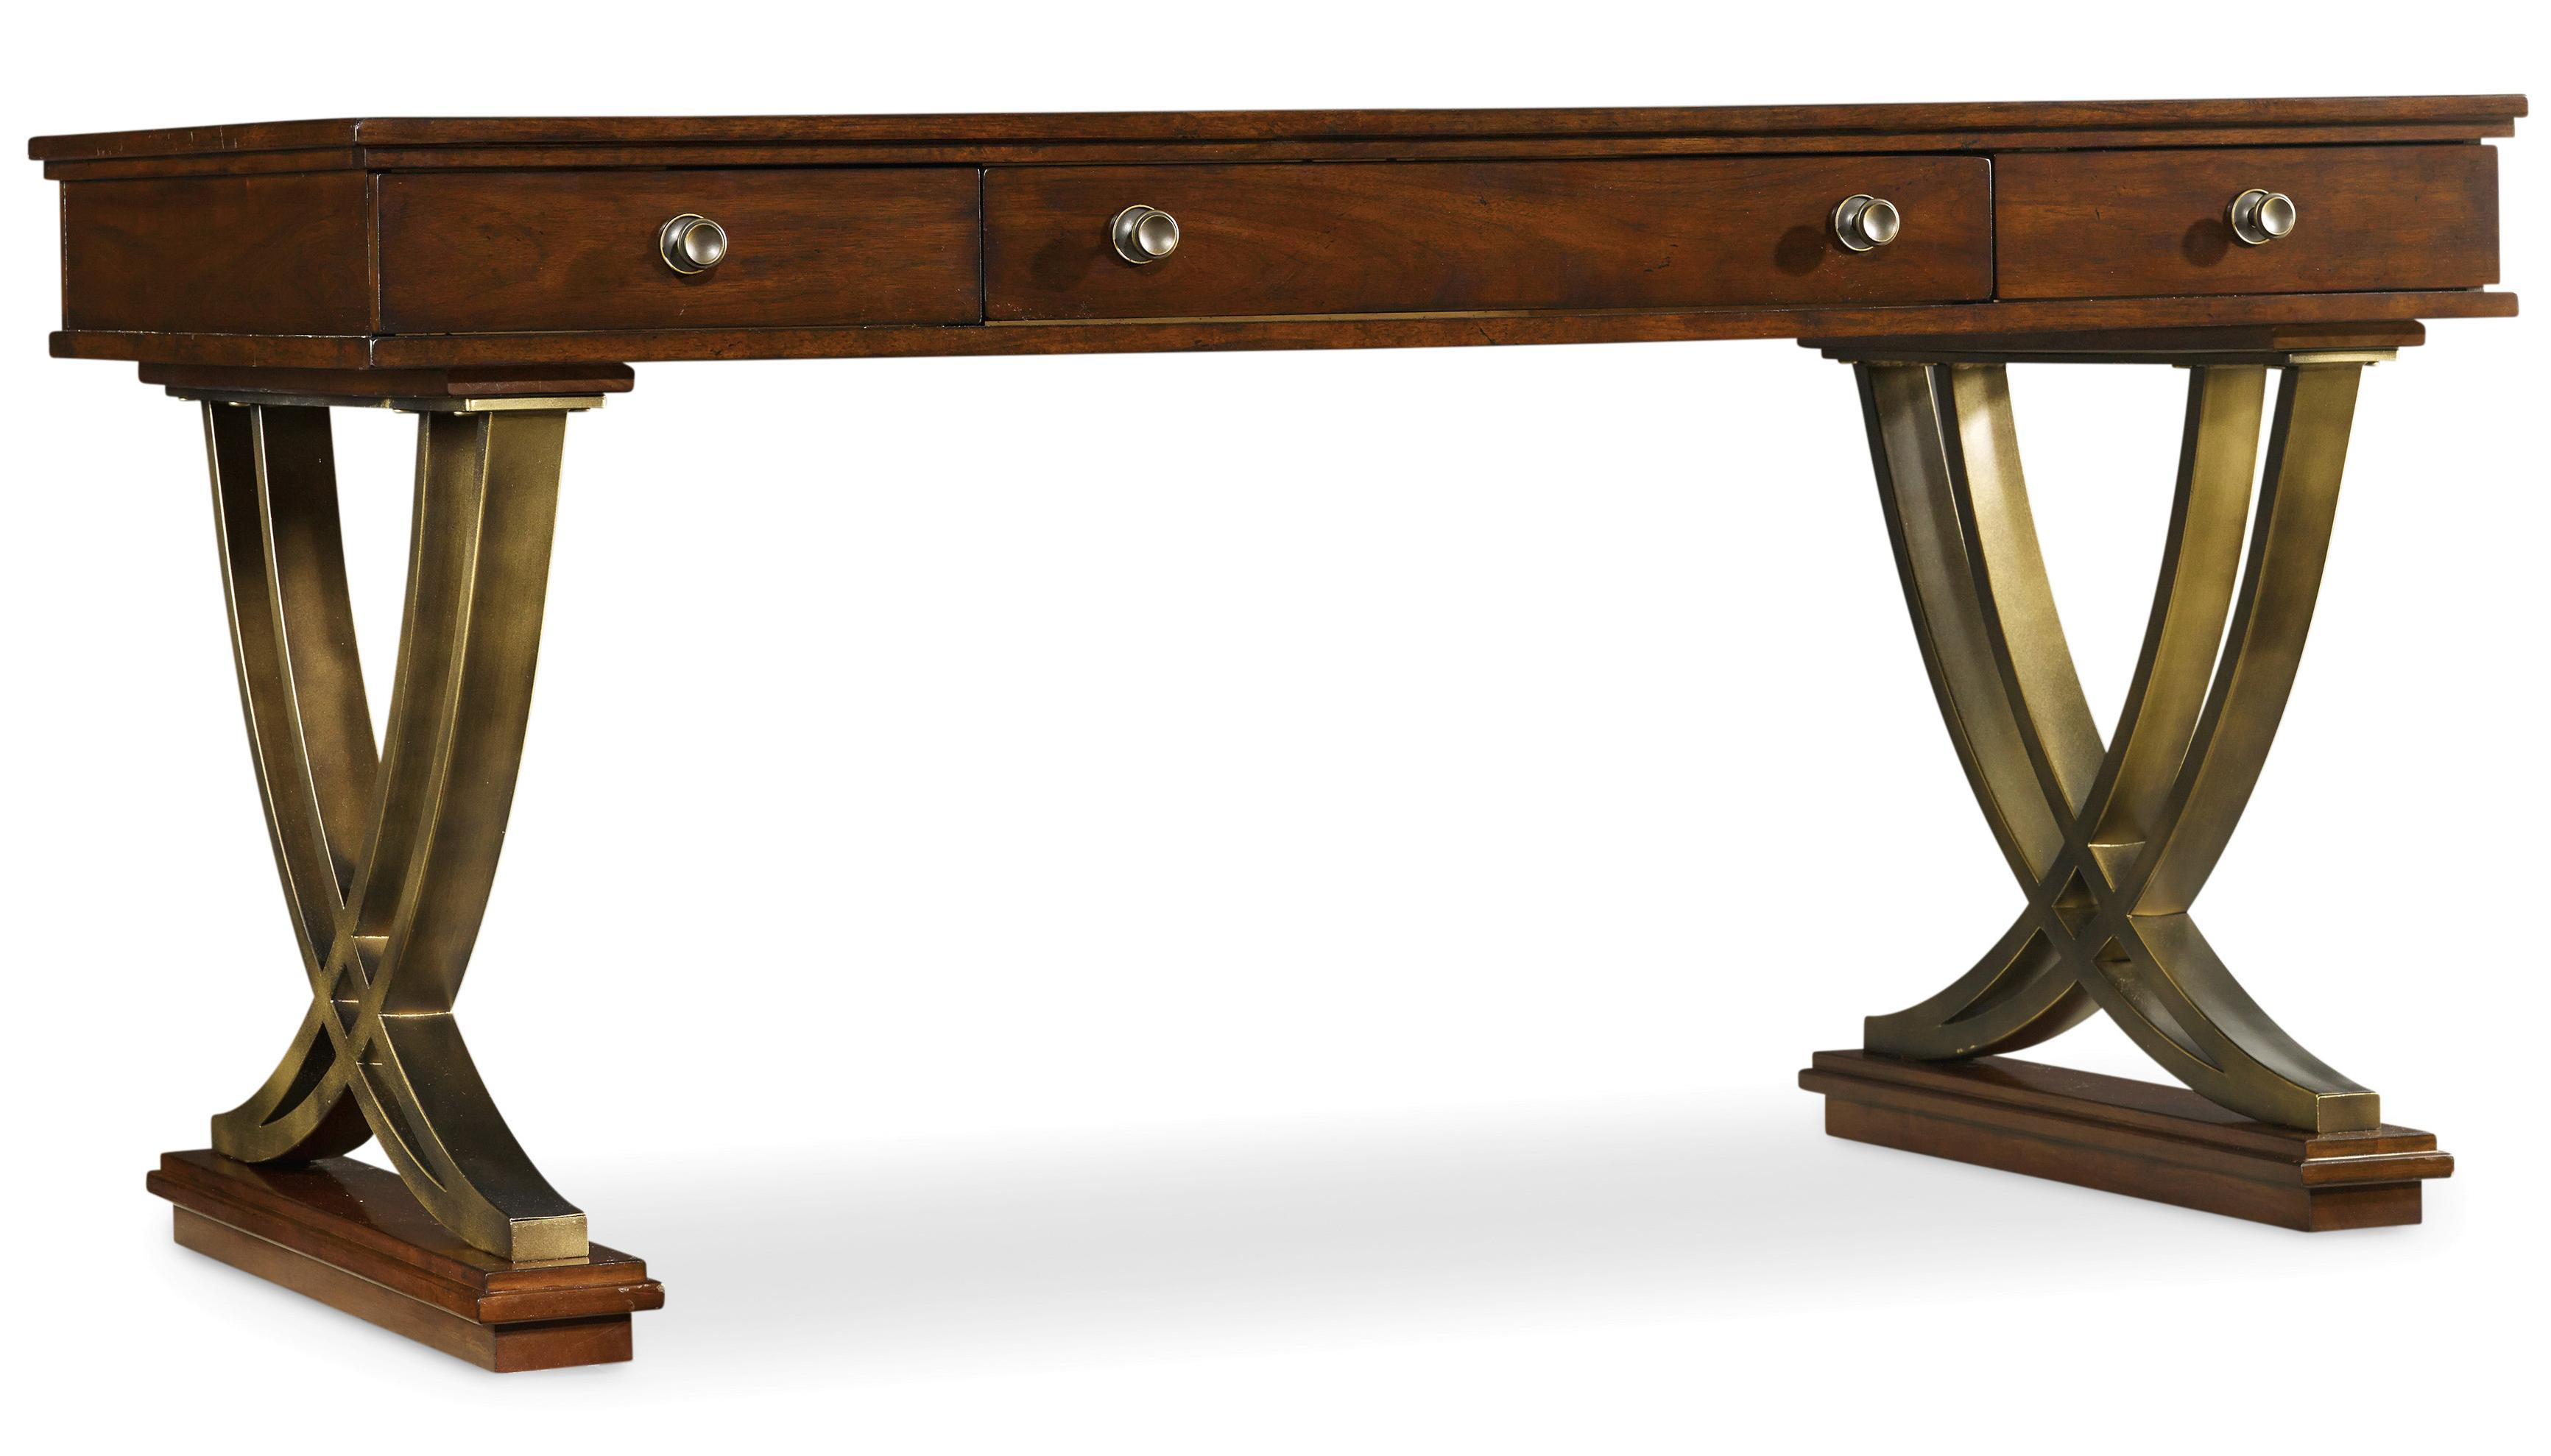 Hooker Furniture Palisade Writing Desk - Item Number: 5183-10458